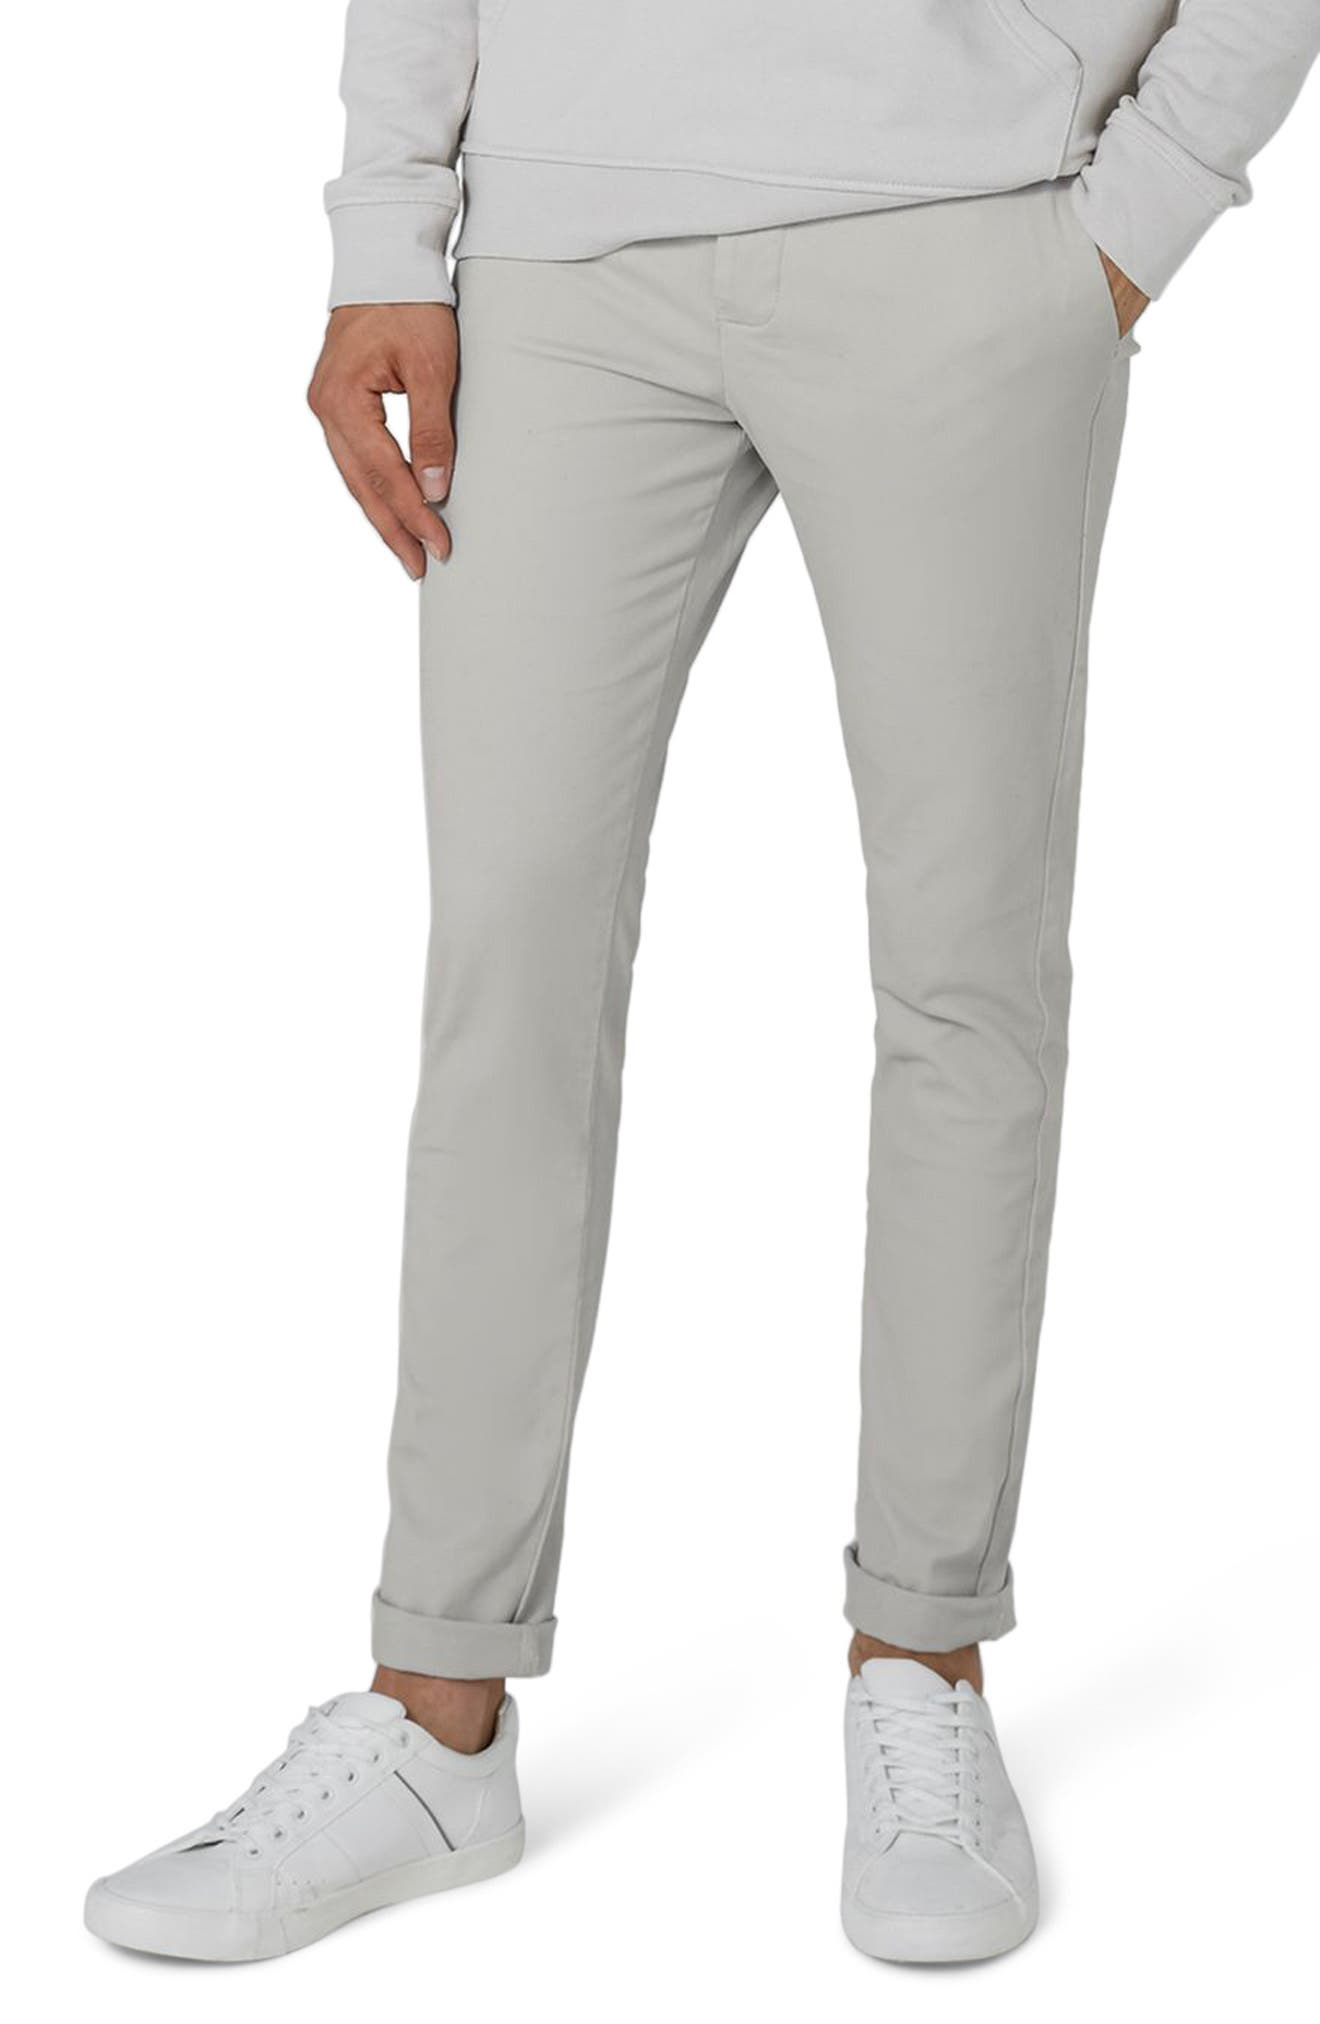 Stretch Skinny Fit Chinos,                         Main,                         color, 020